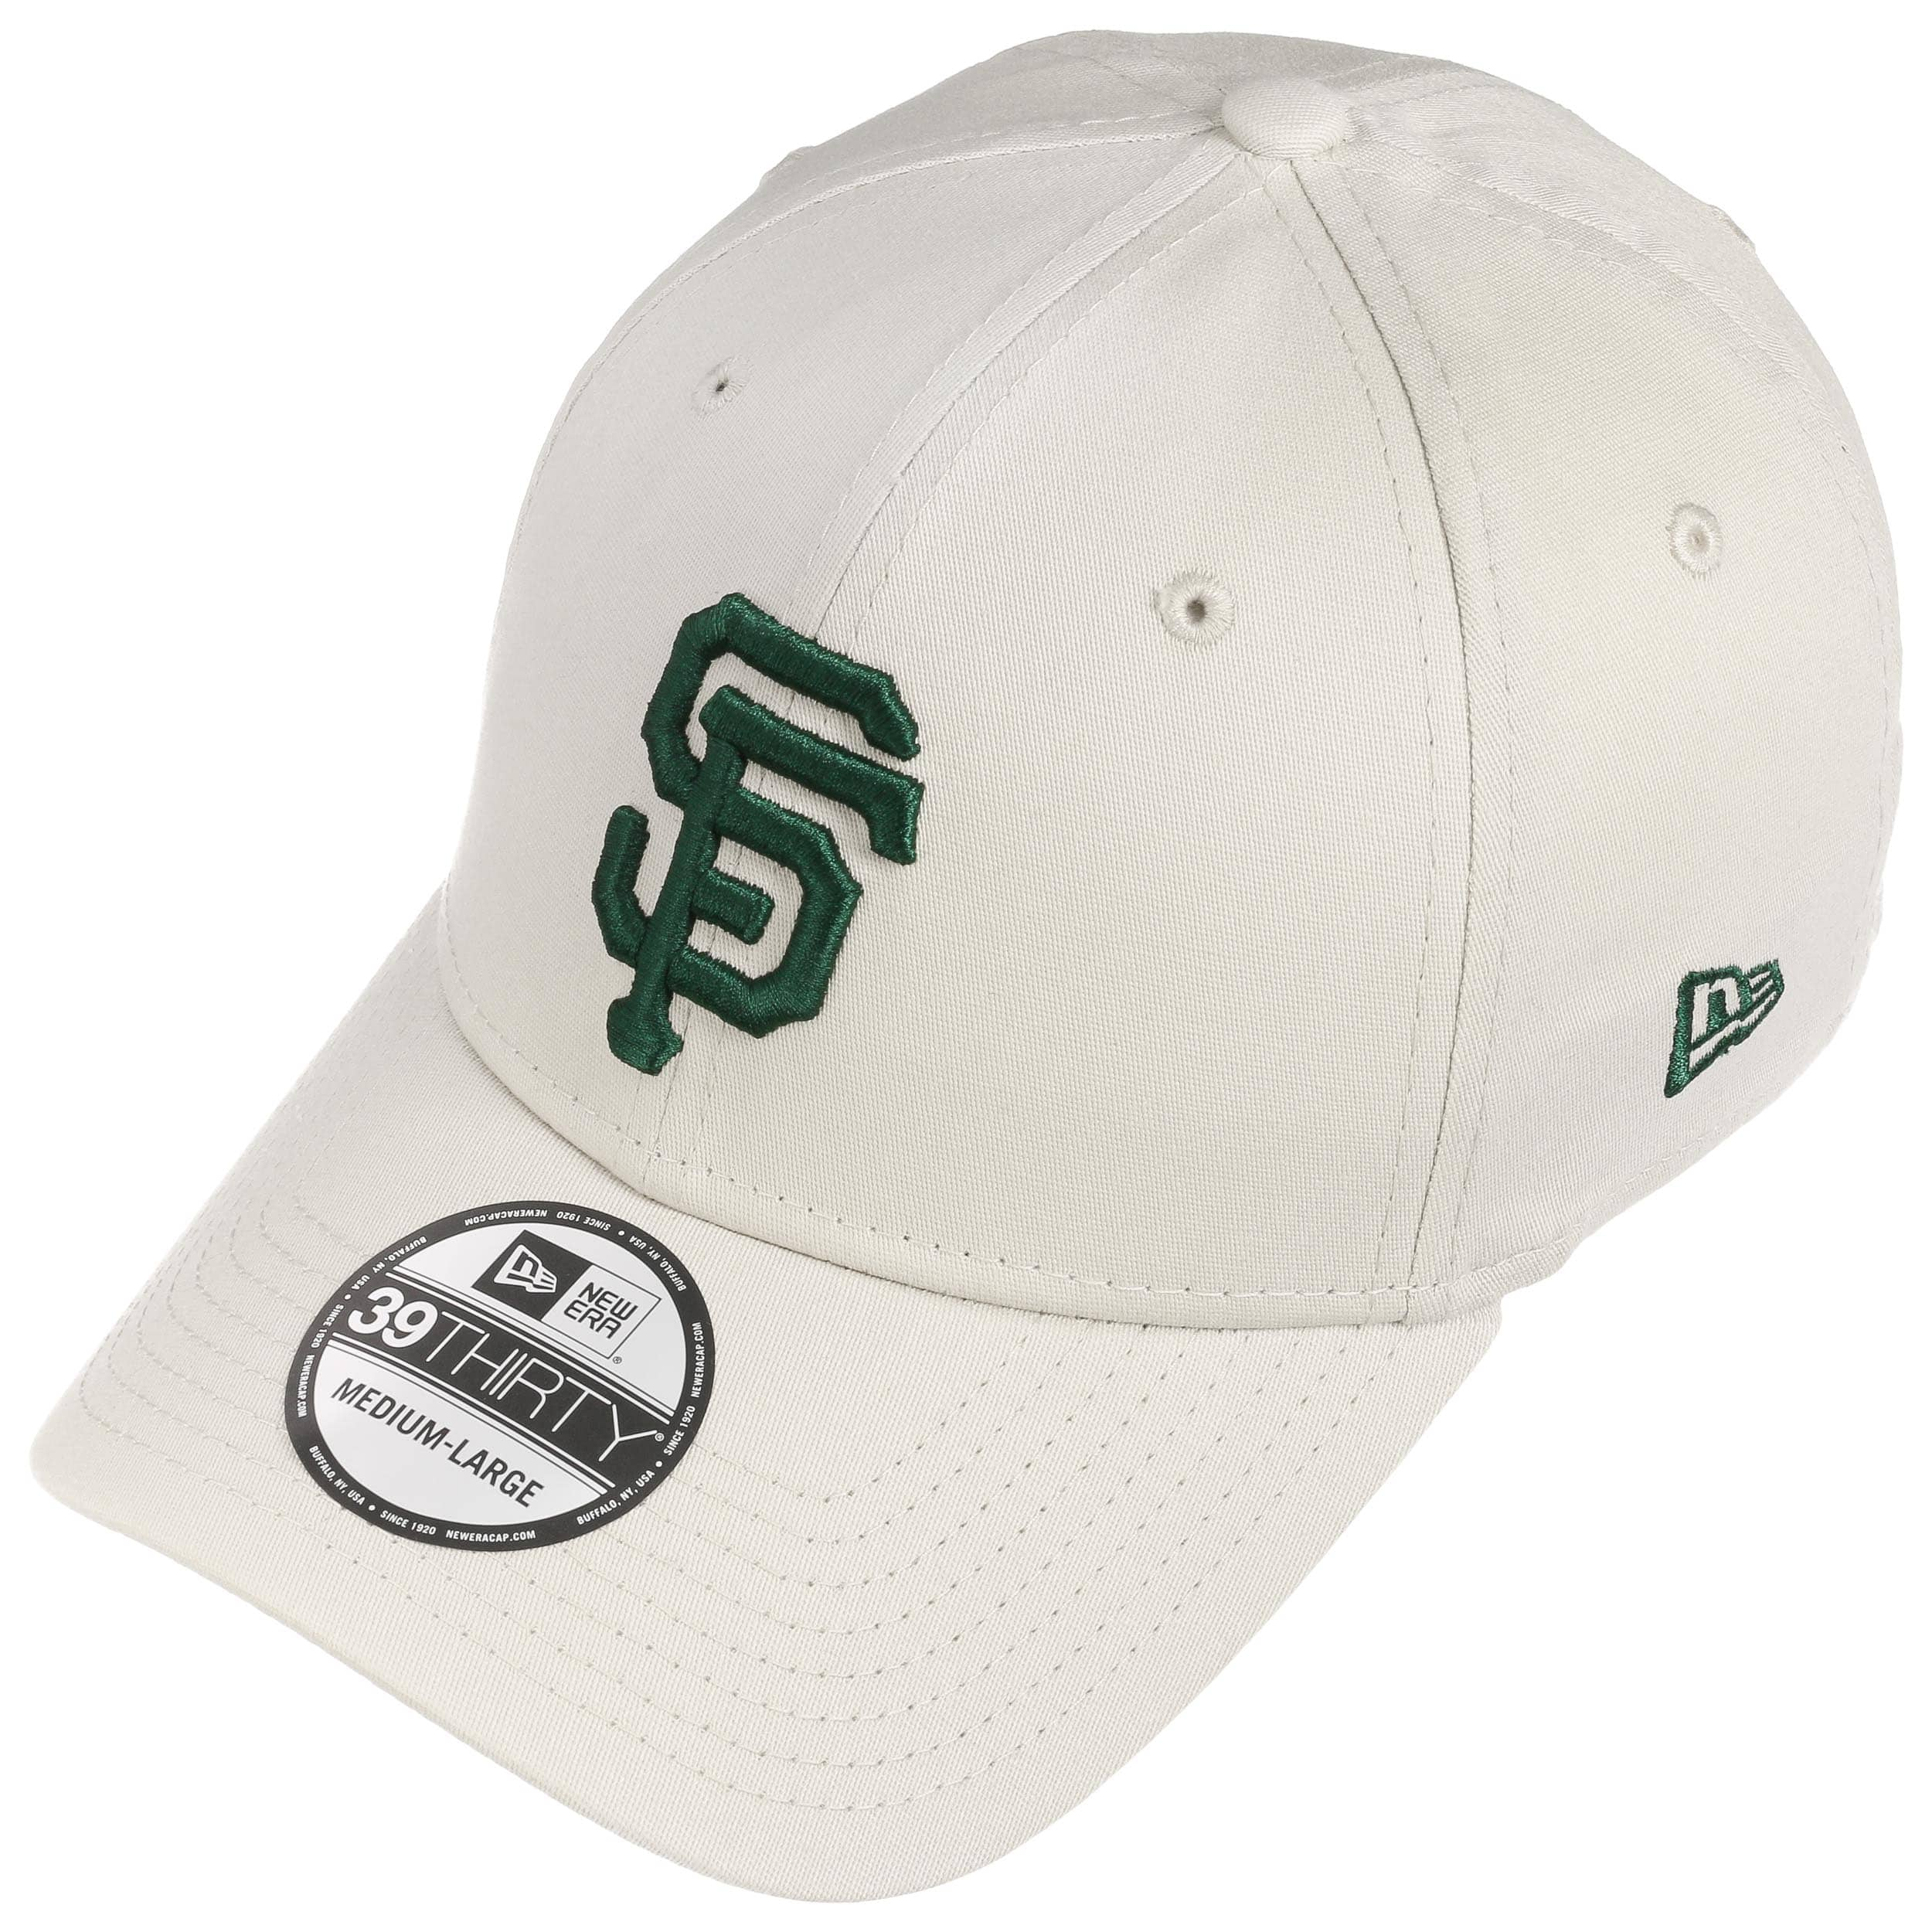 Gorra 39Thirty League Ess Giants by New Era - Gorras - sombreroshop.es db0cfaa2a76